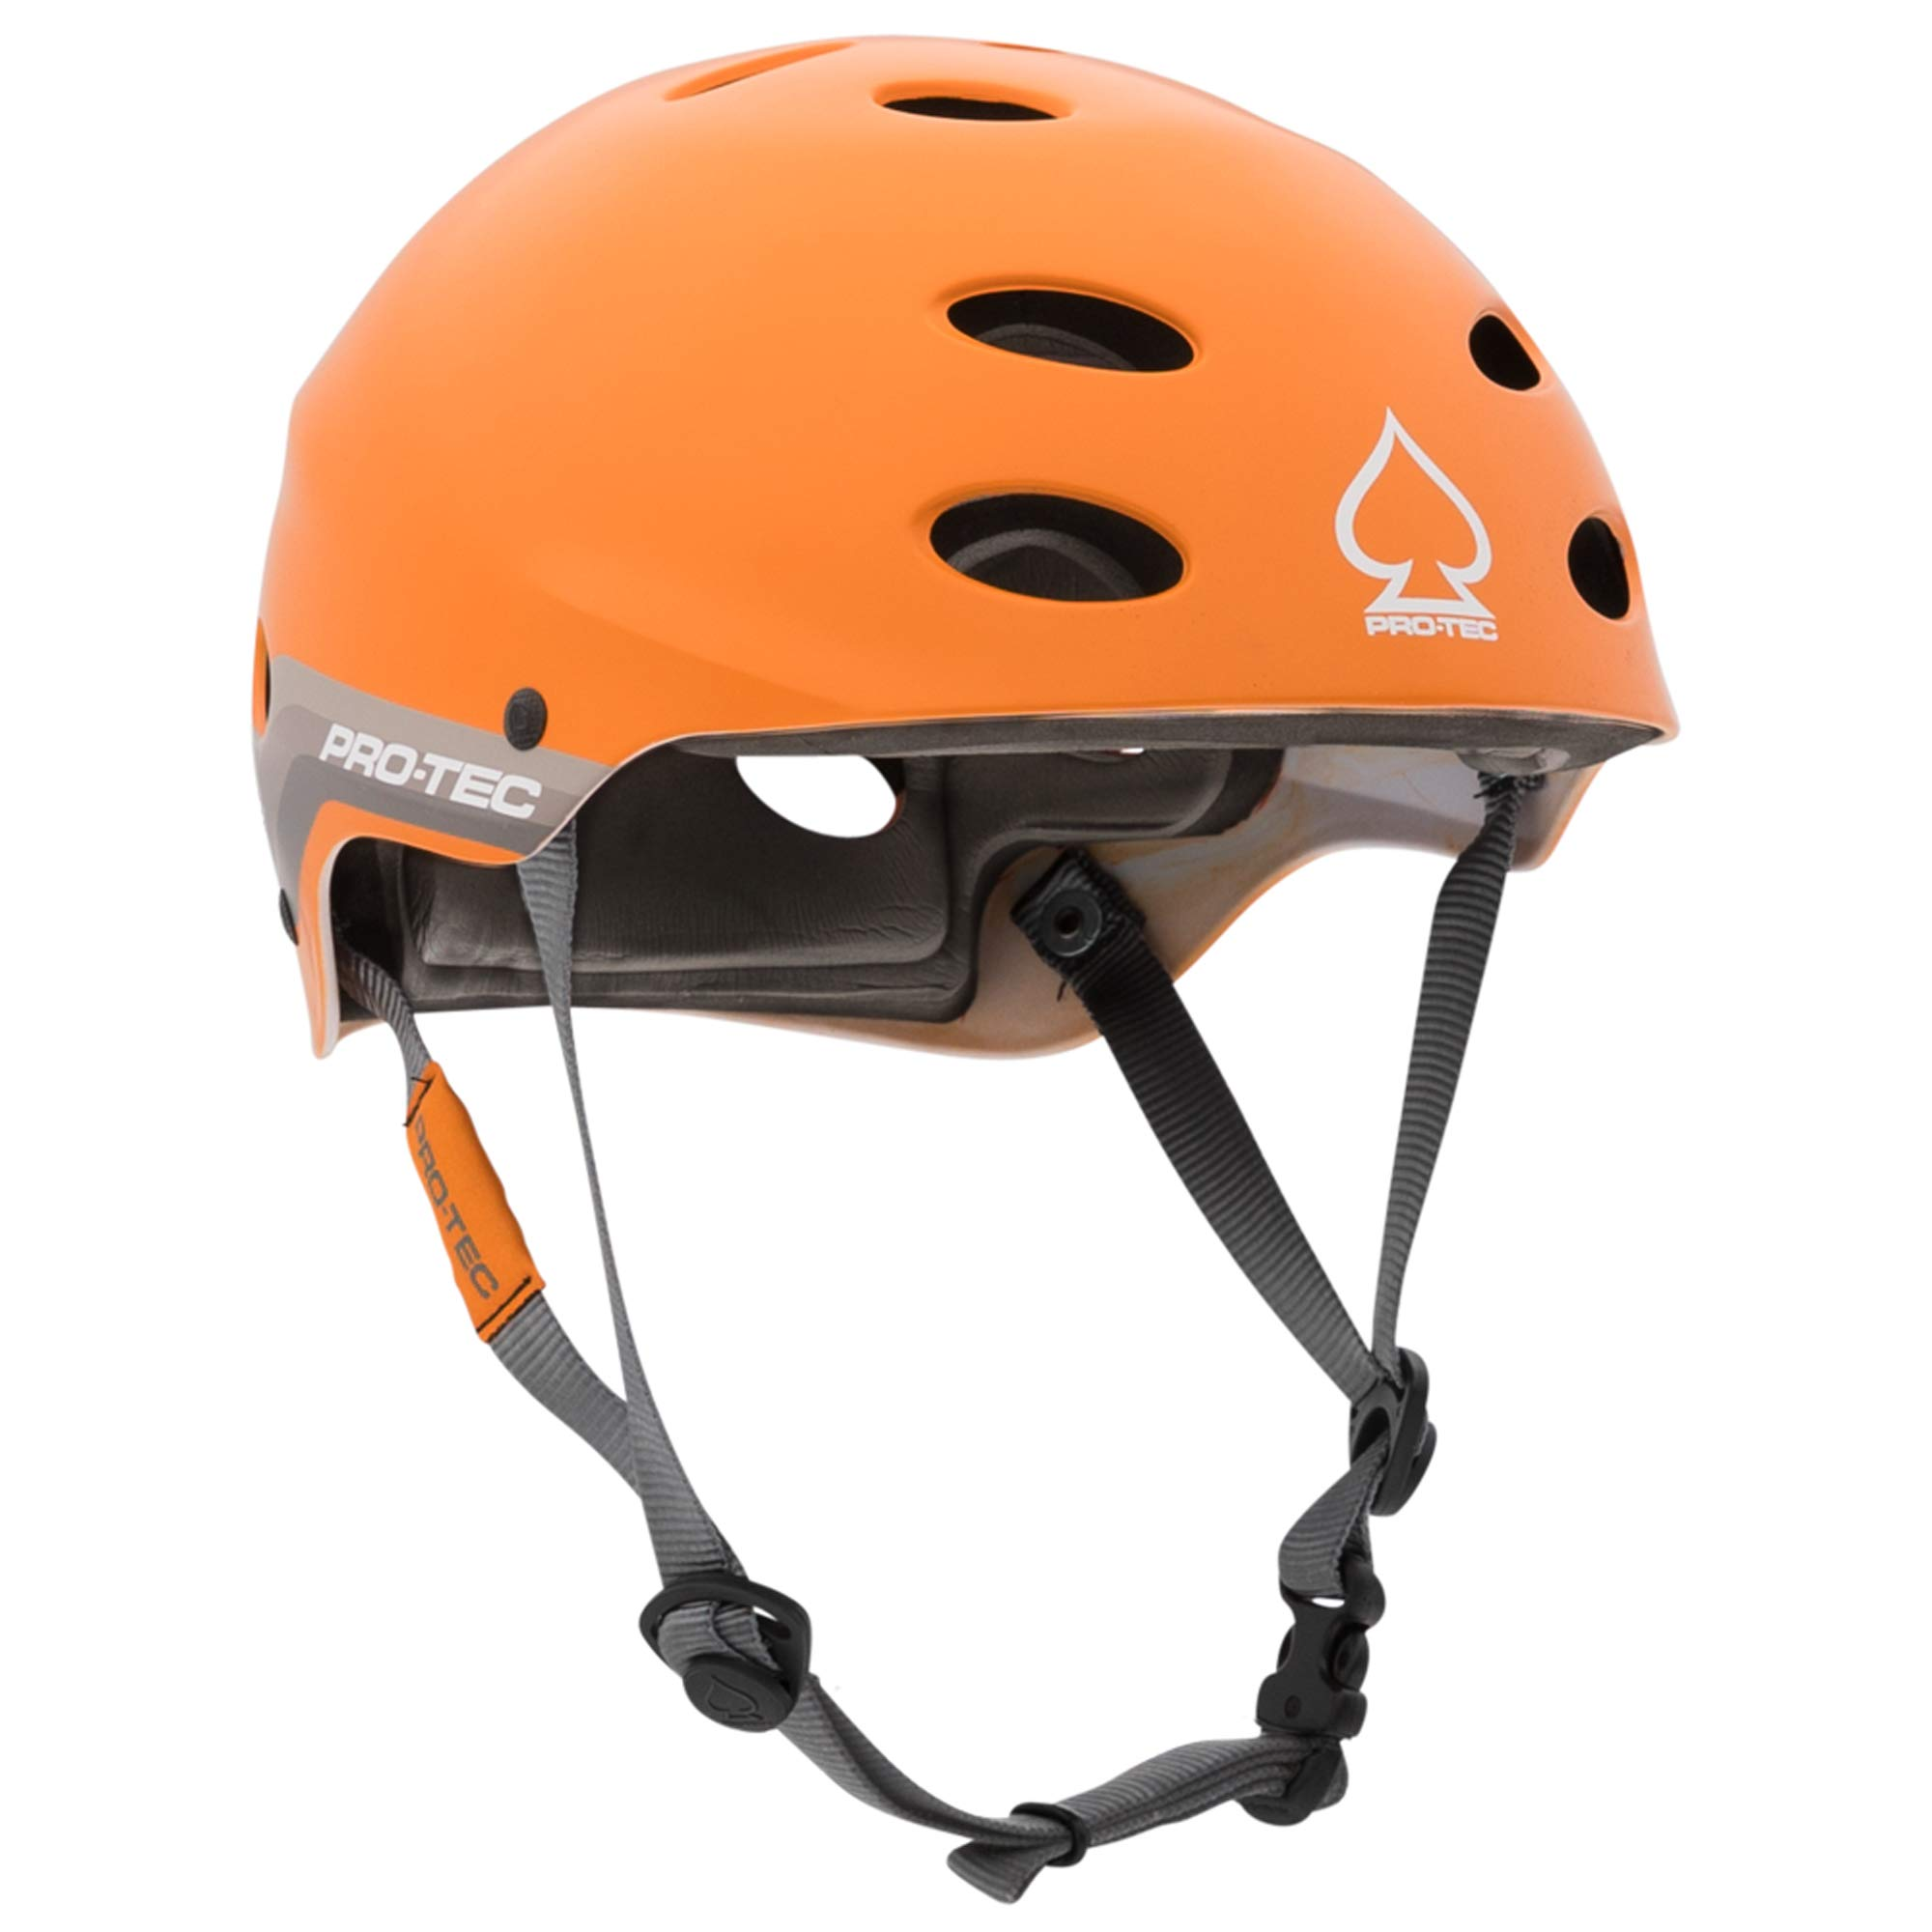 Pro-Tec - Ace Water Helmet, Satin Orange Retro, S by Pro-Tec